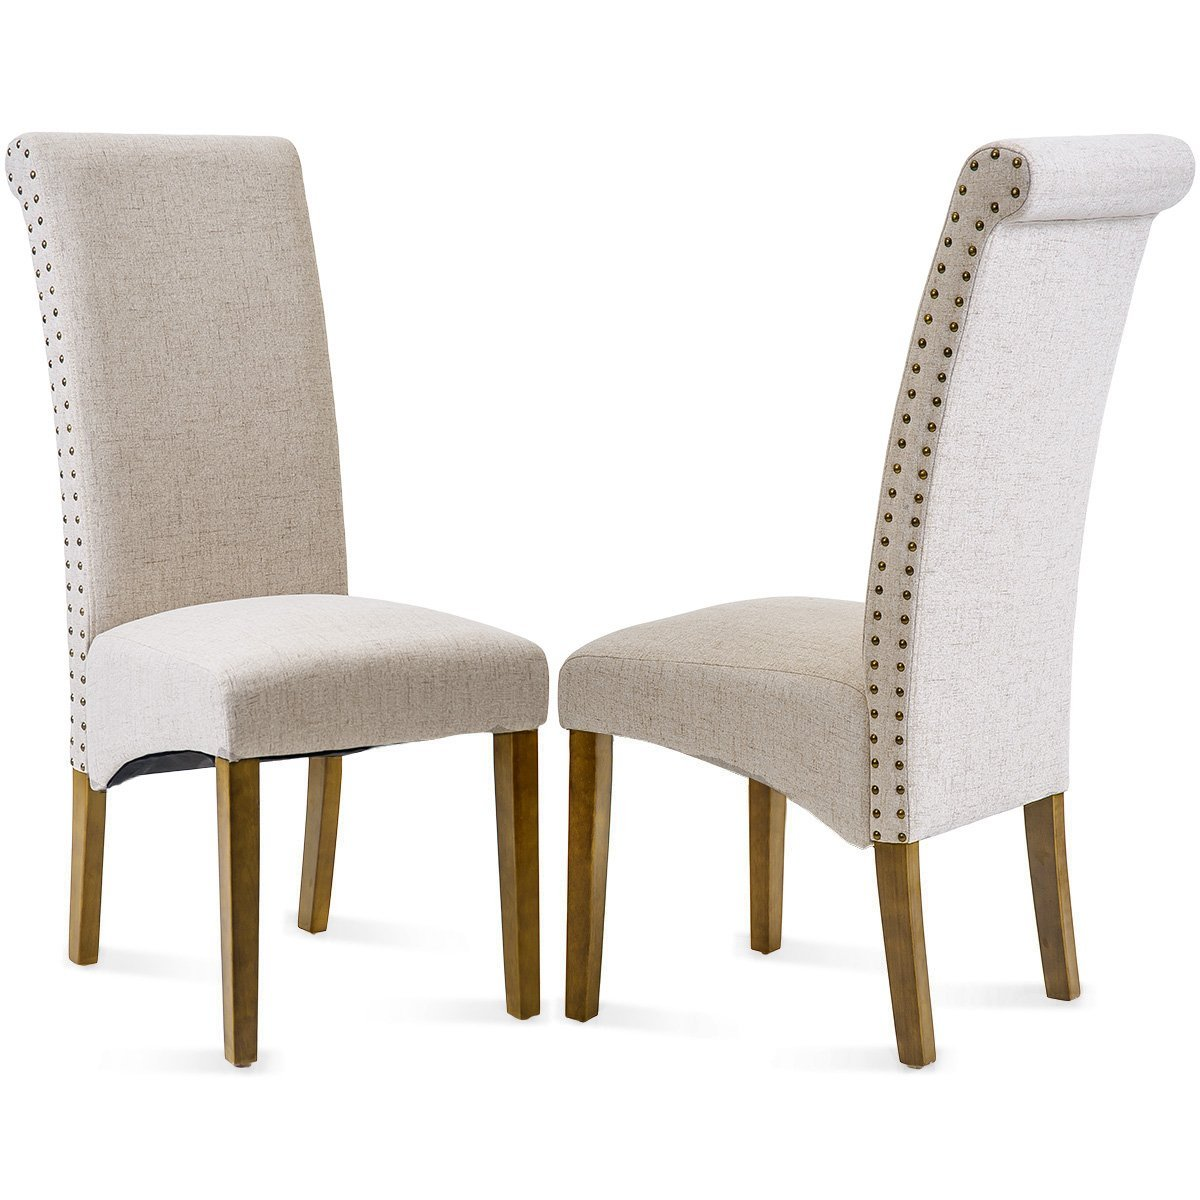 Linen side chairs